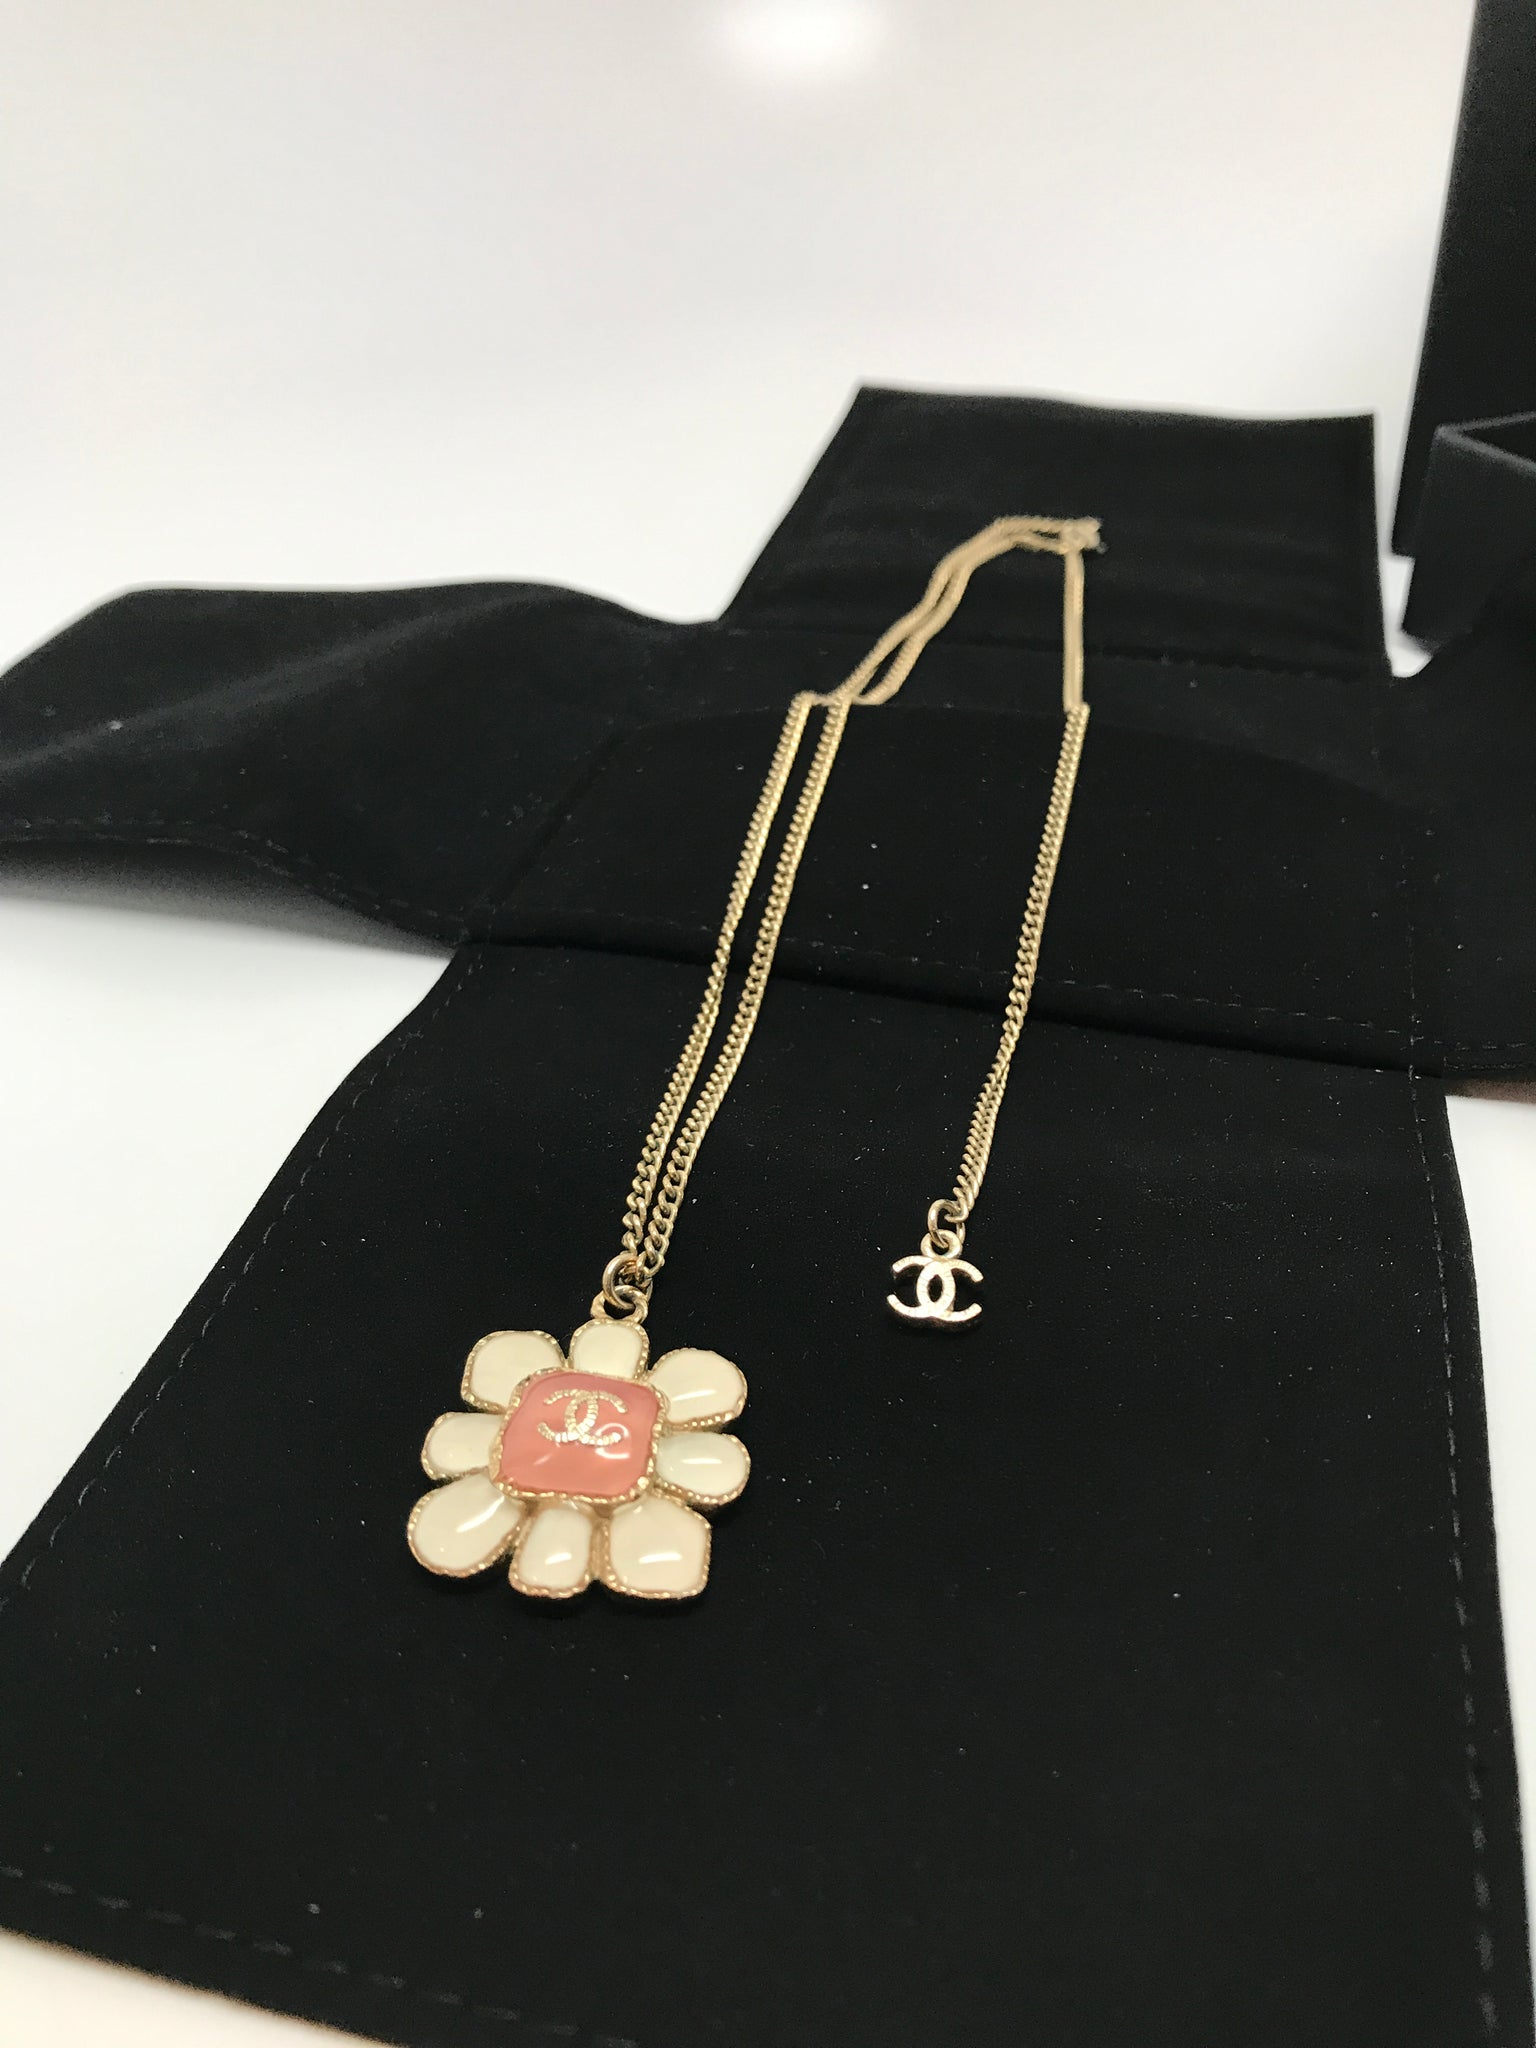 CHANEL GOLD CC WHITE FLOWER PENDANT IN GOLD AND BABY PINK